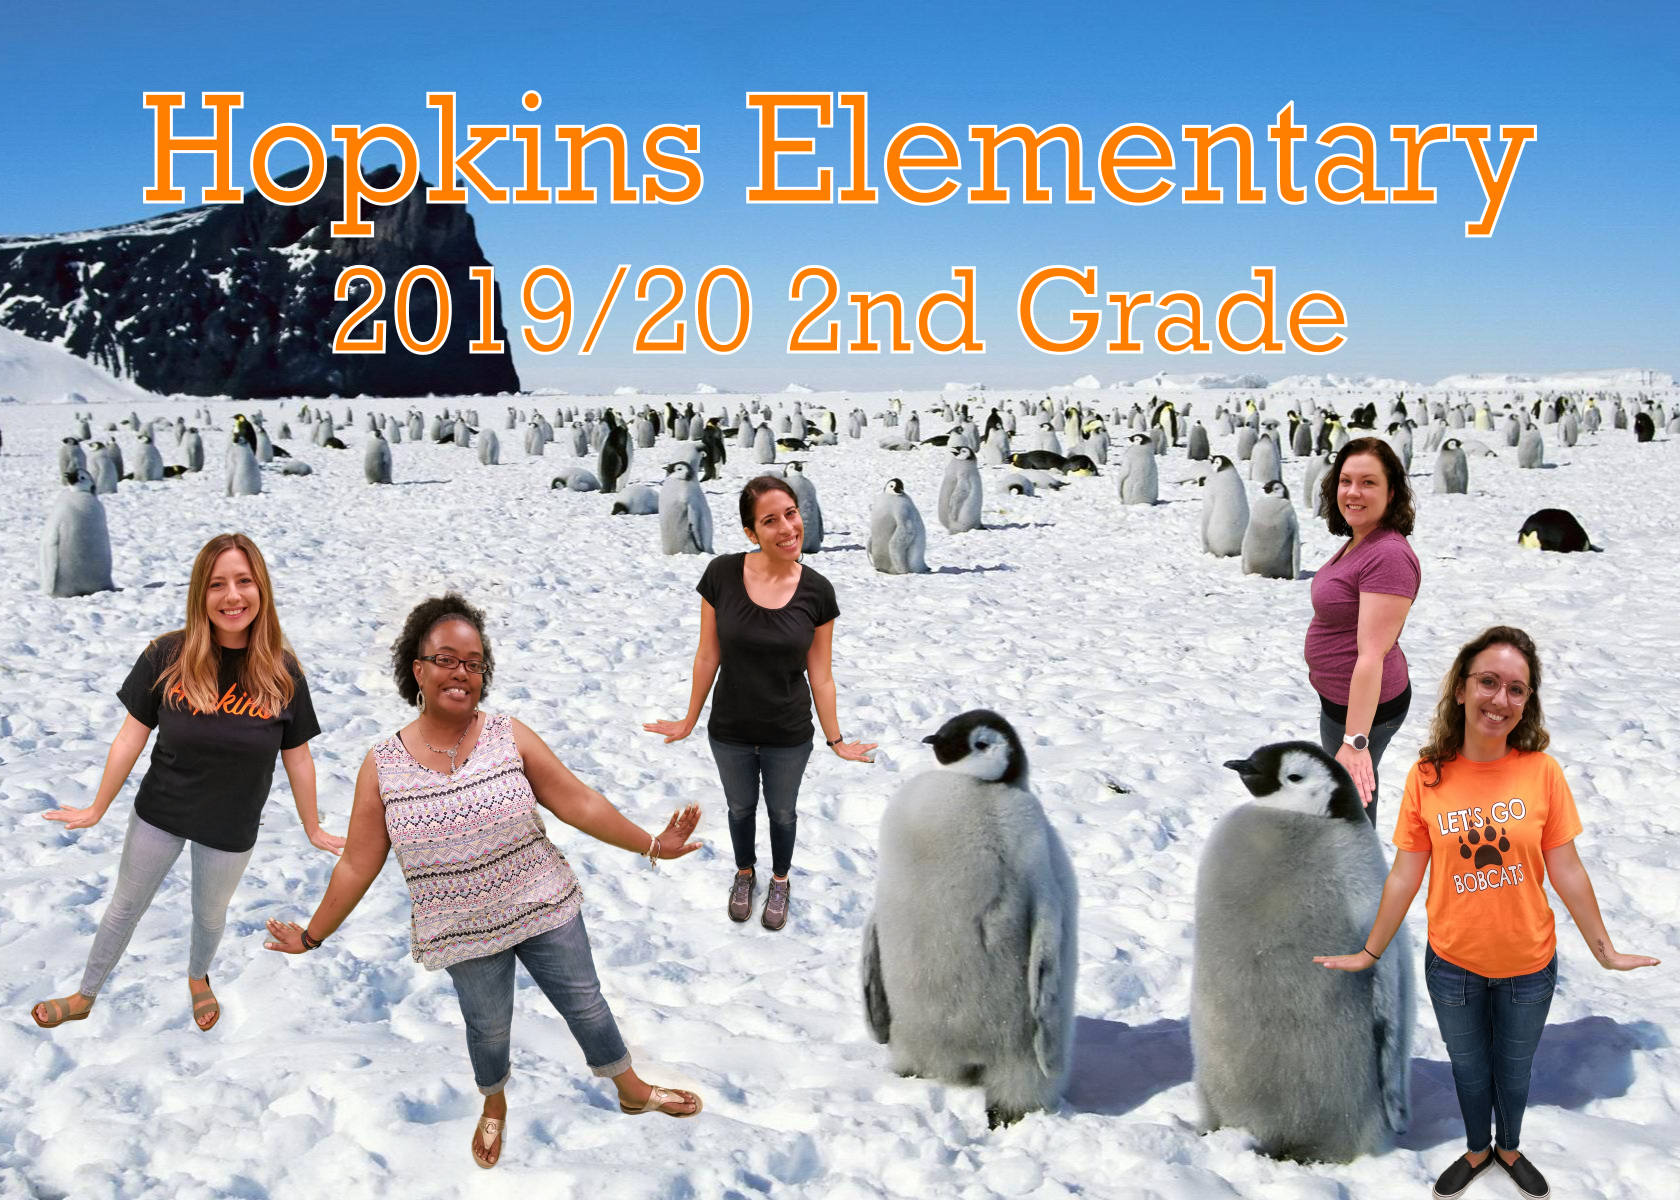 teachers on ice and snow backdrop with penguins